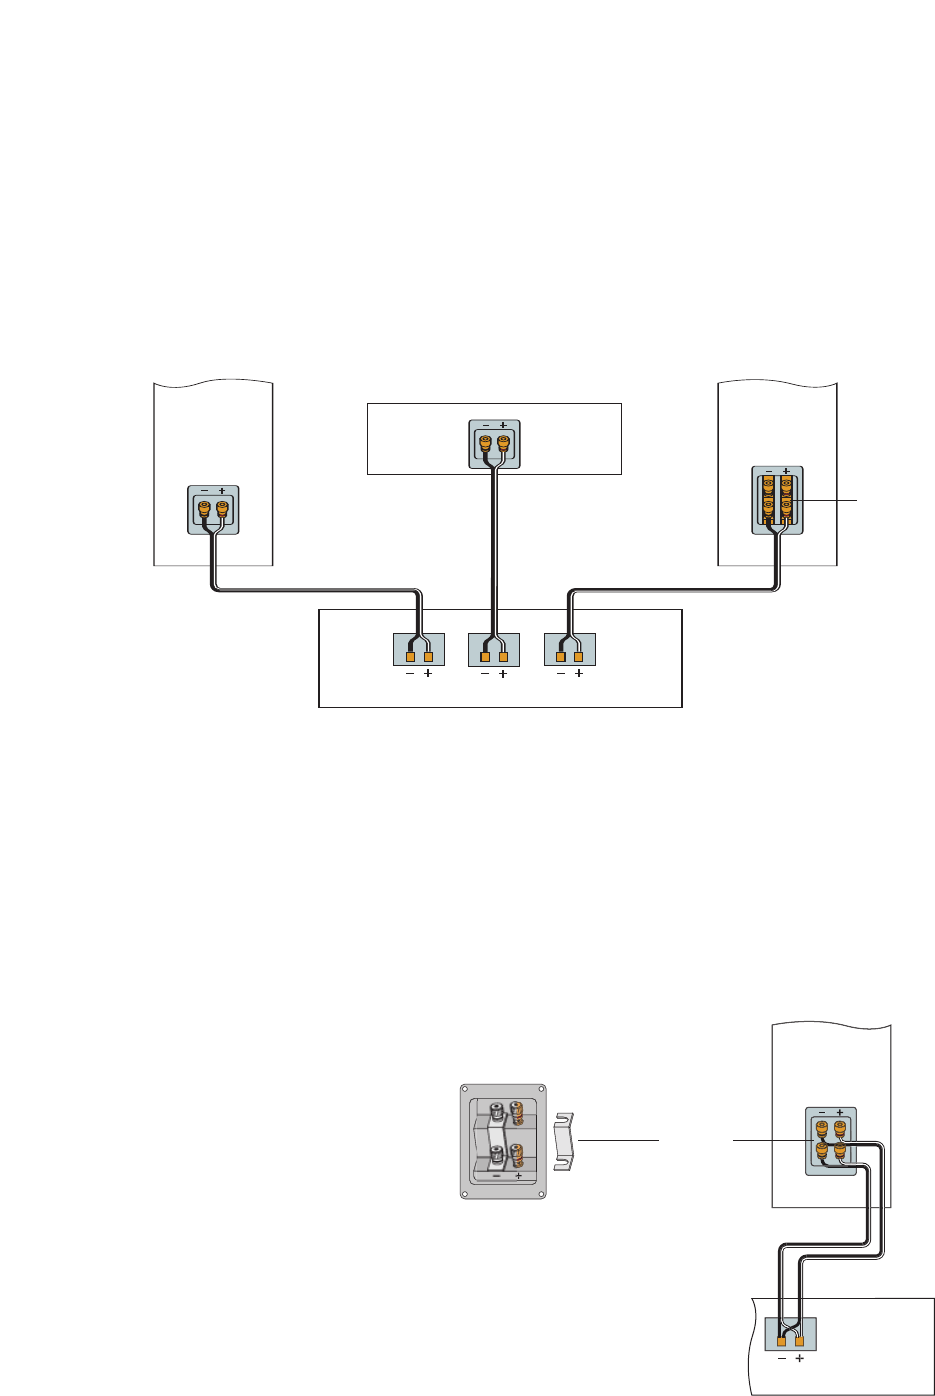 boston acoustics basic hookup, bi-wiring (vr2, vr3 only), connecting the  speakers to your amplier or receiver